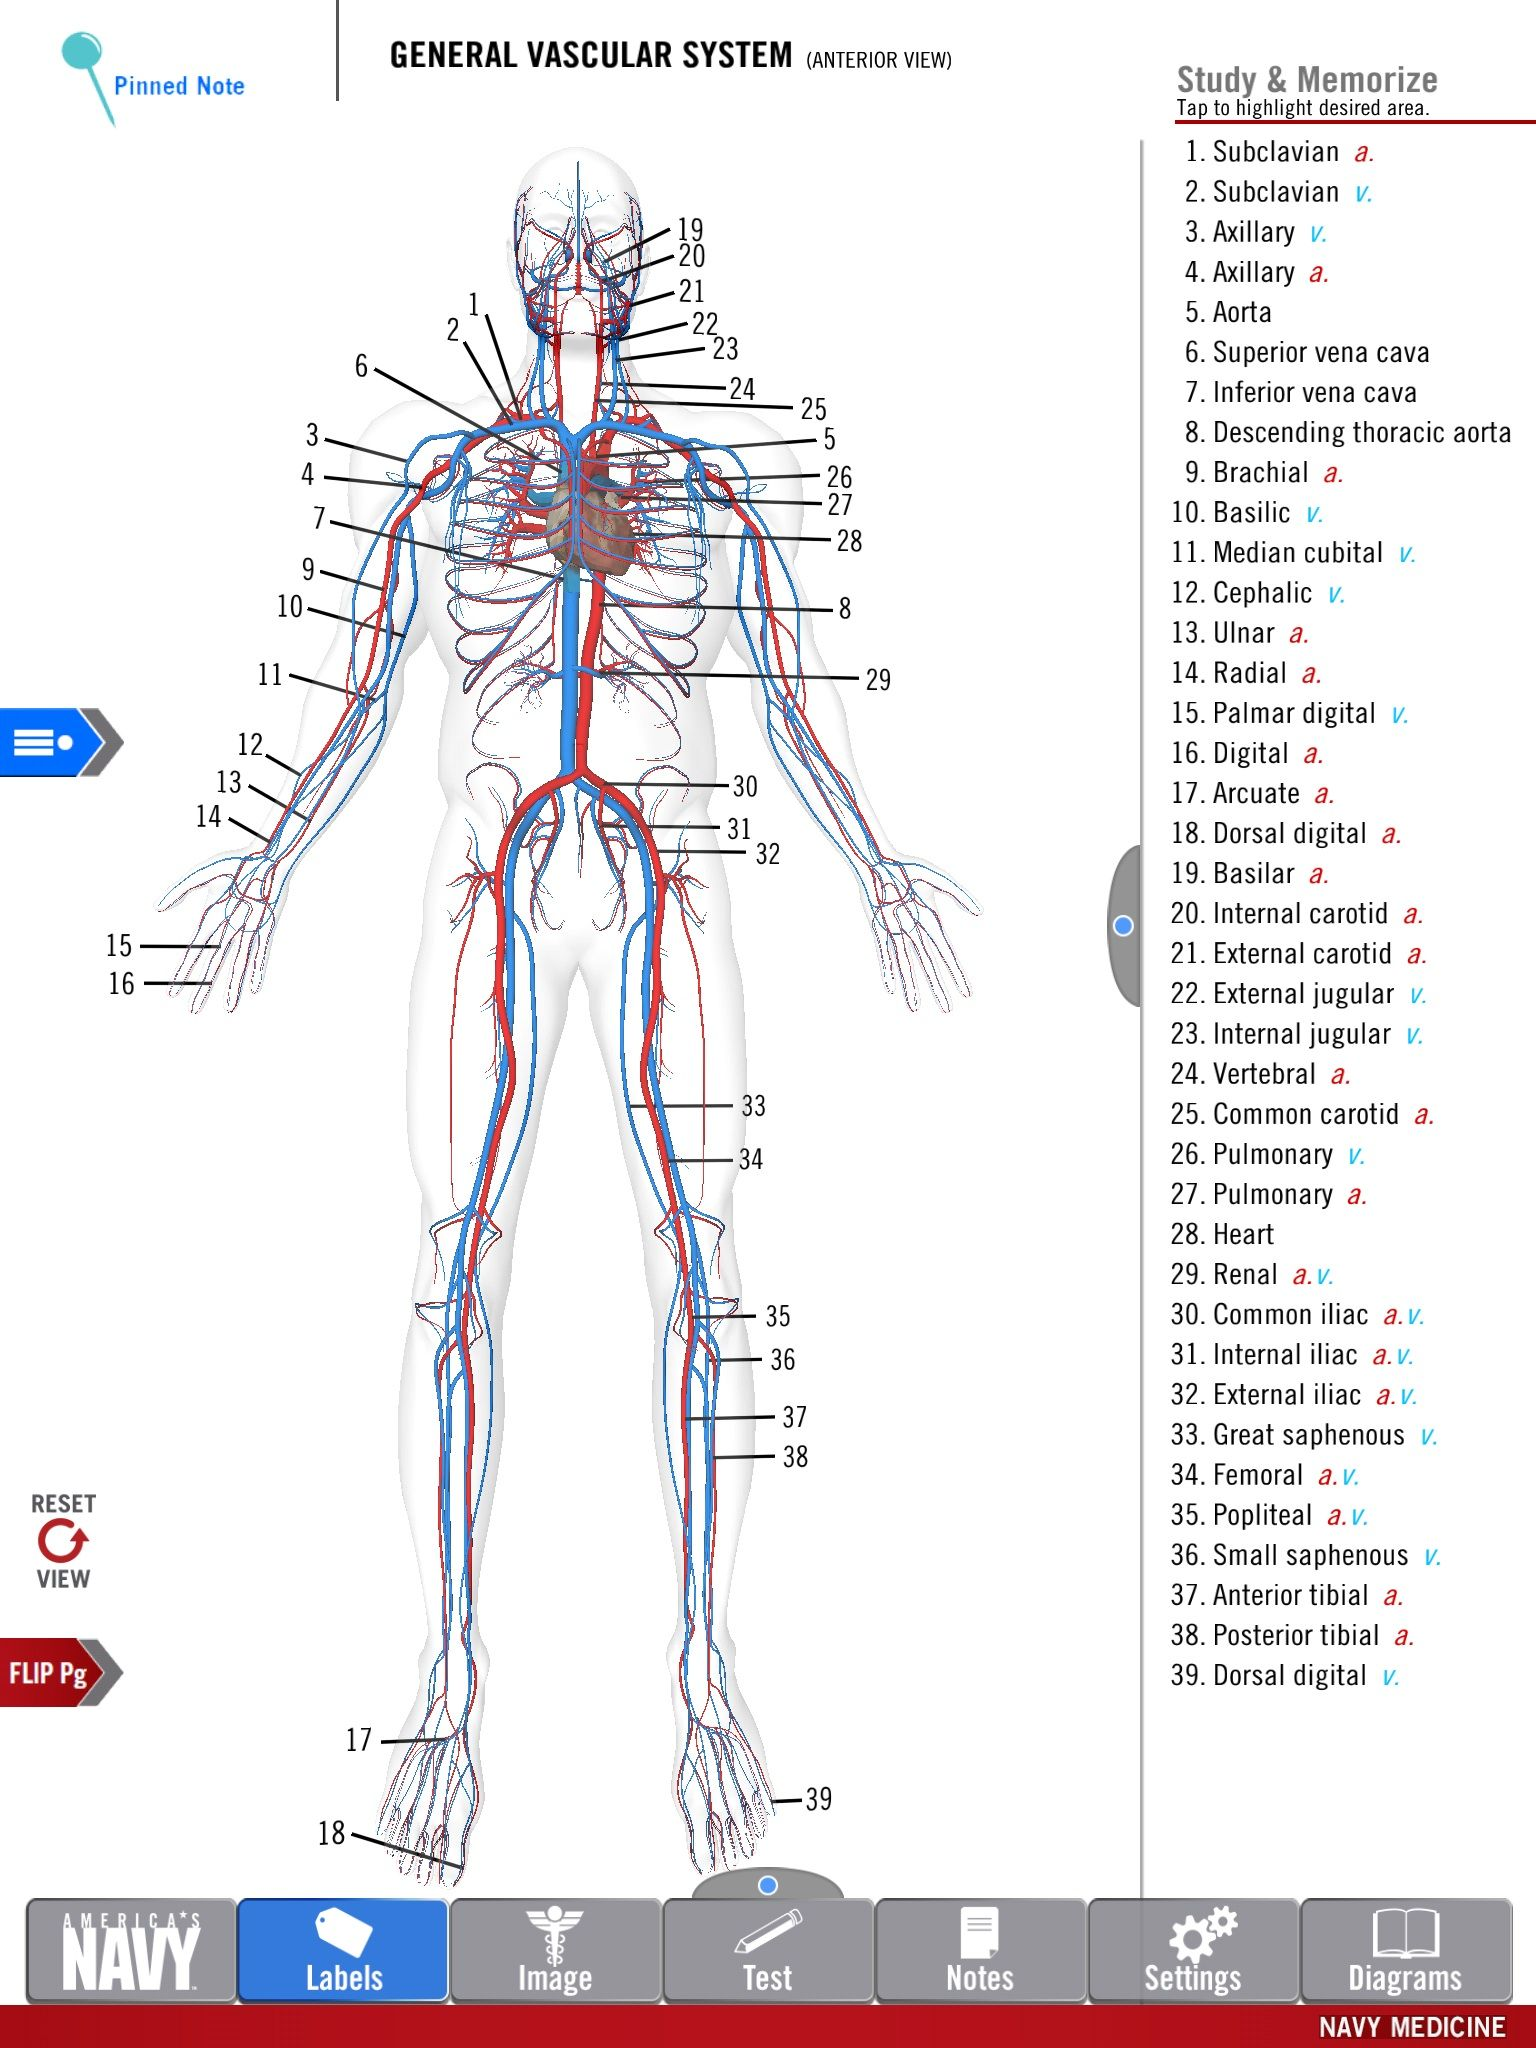 small resolution of diagram of the general vascular system from the free anatomy study guide app by america s navy includes high res 3 d diagrams